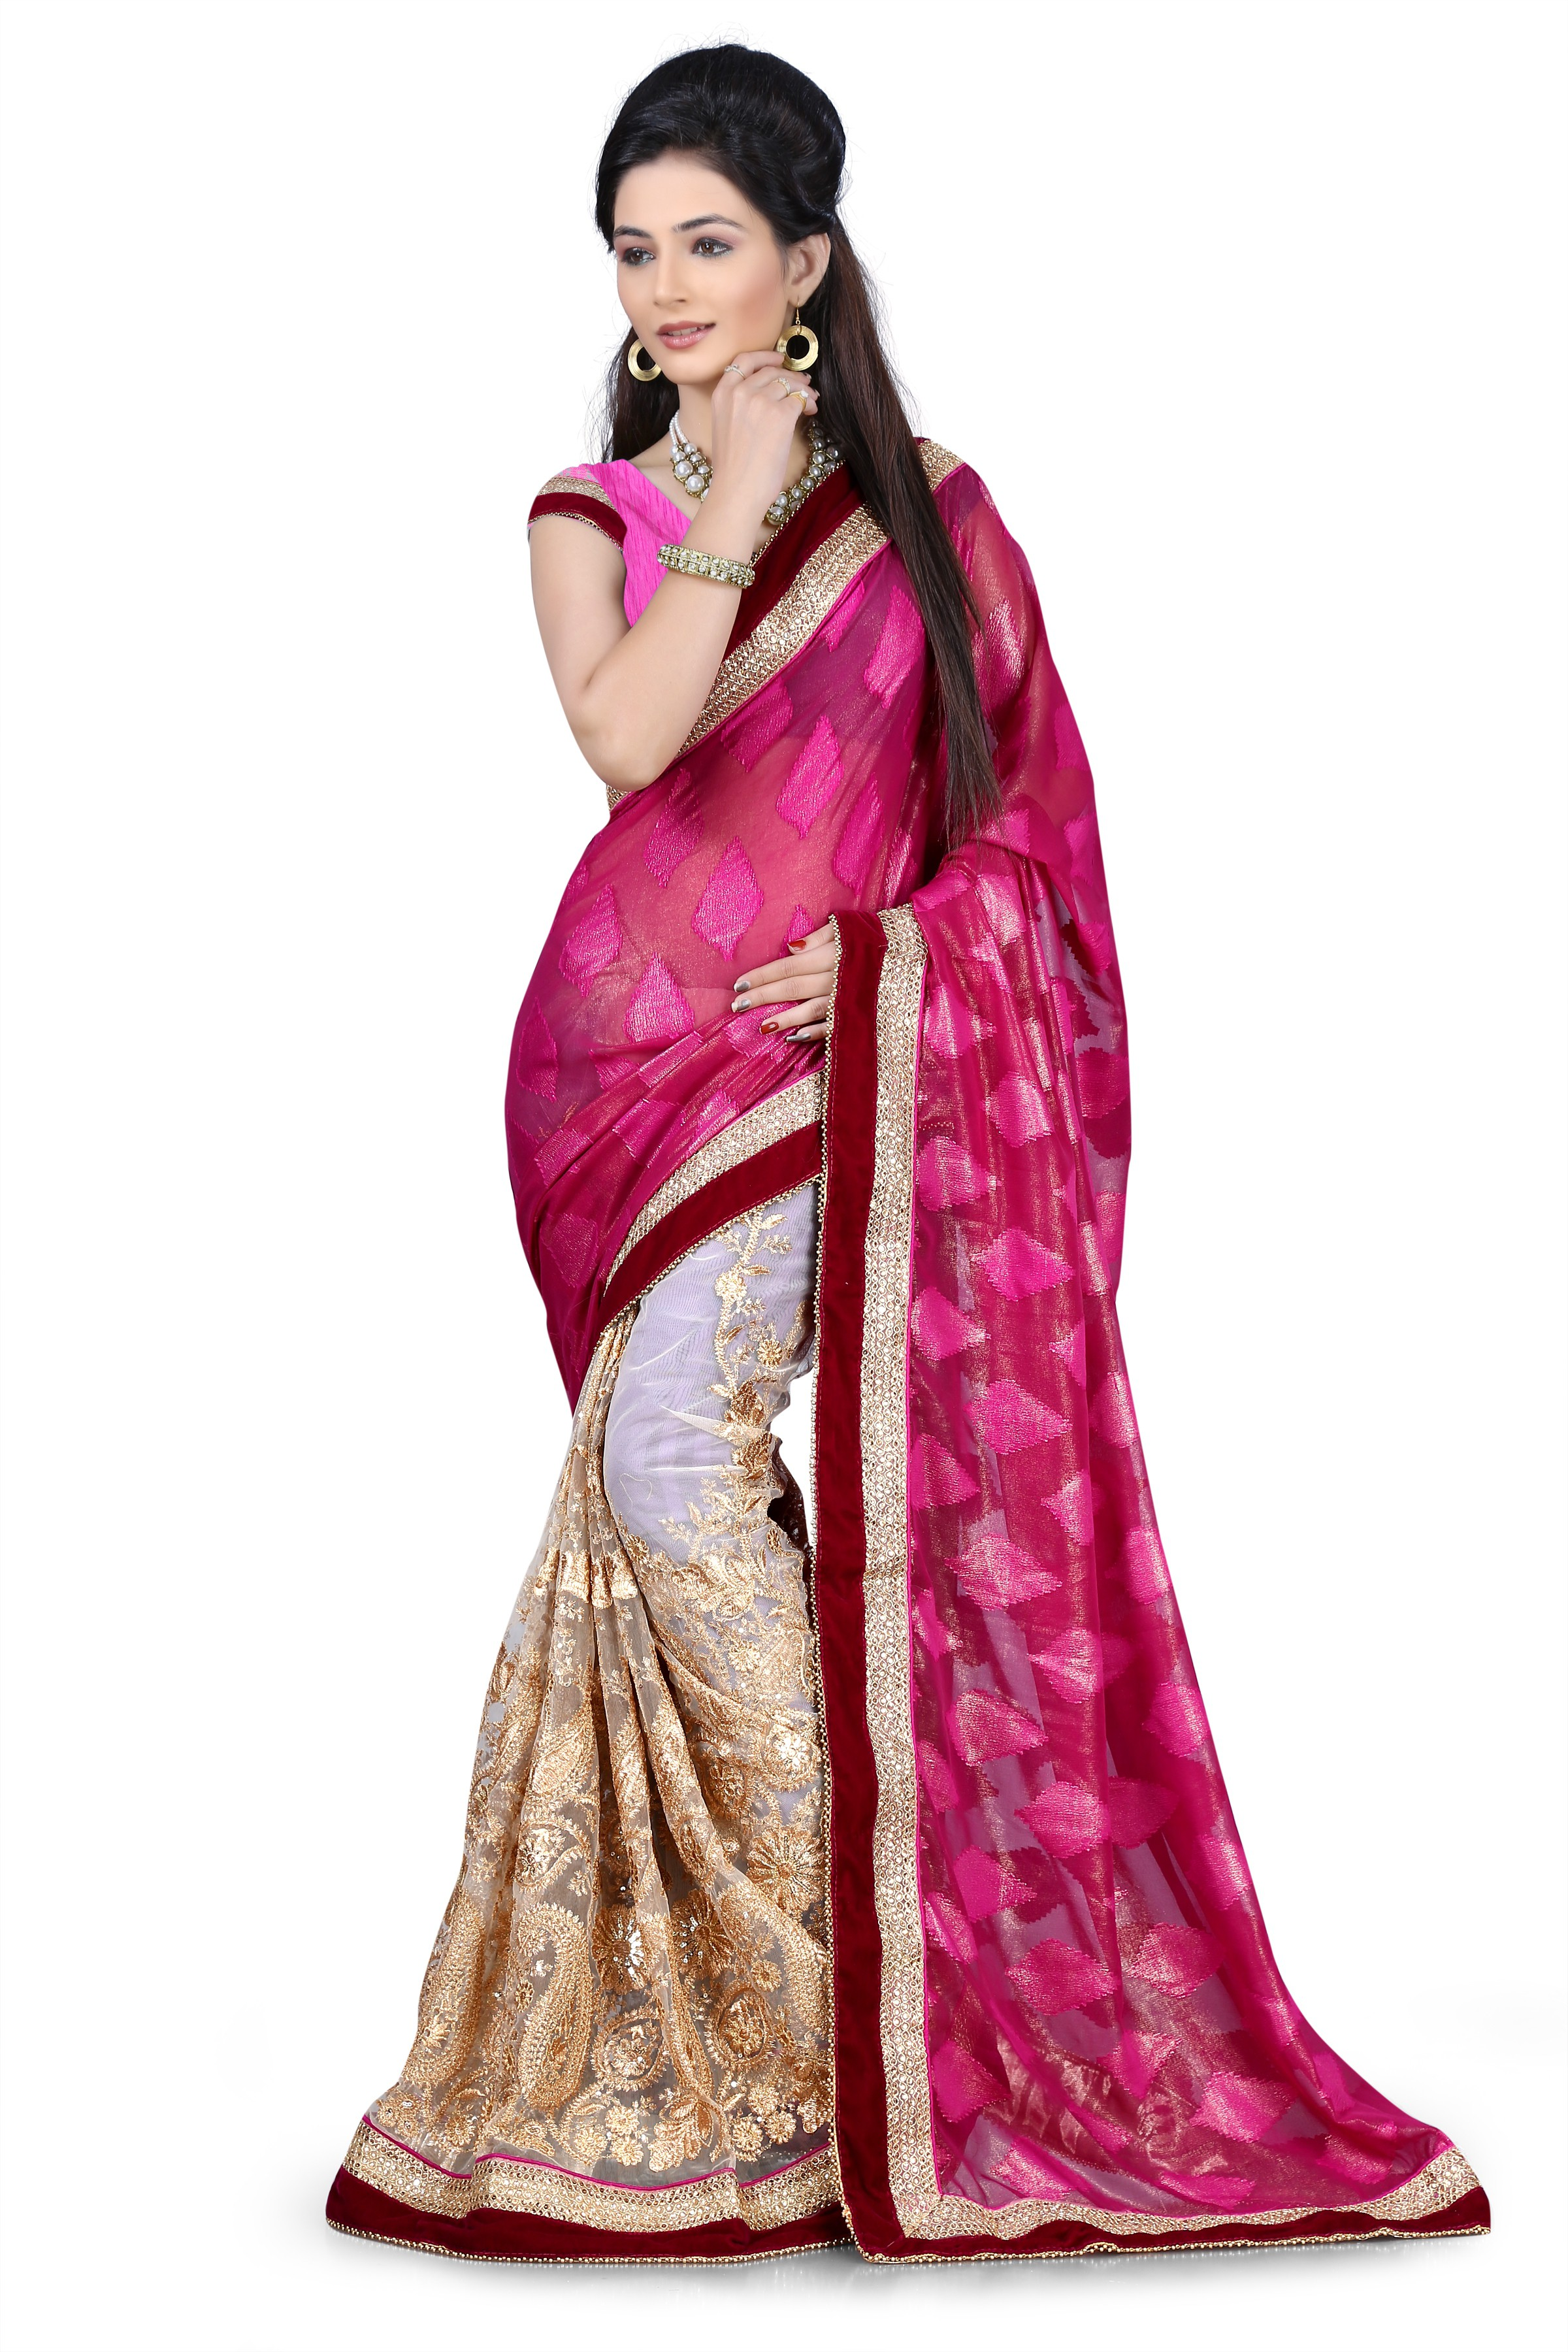 Indianbeauty Self Design, Embriodered Bollywood Jacquard, Net Sari